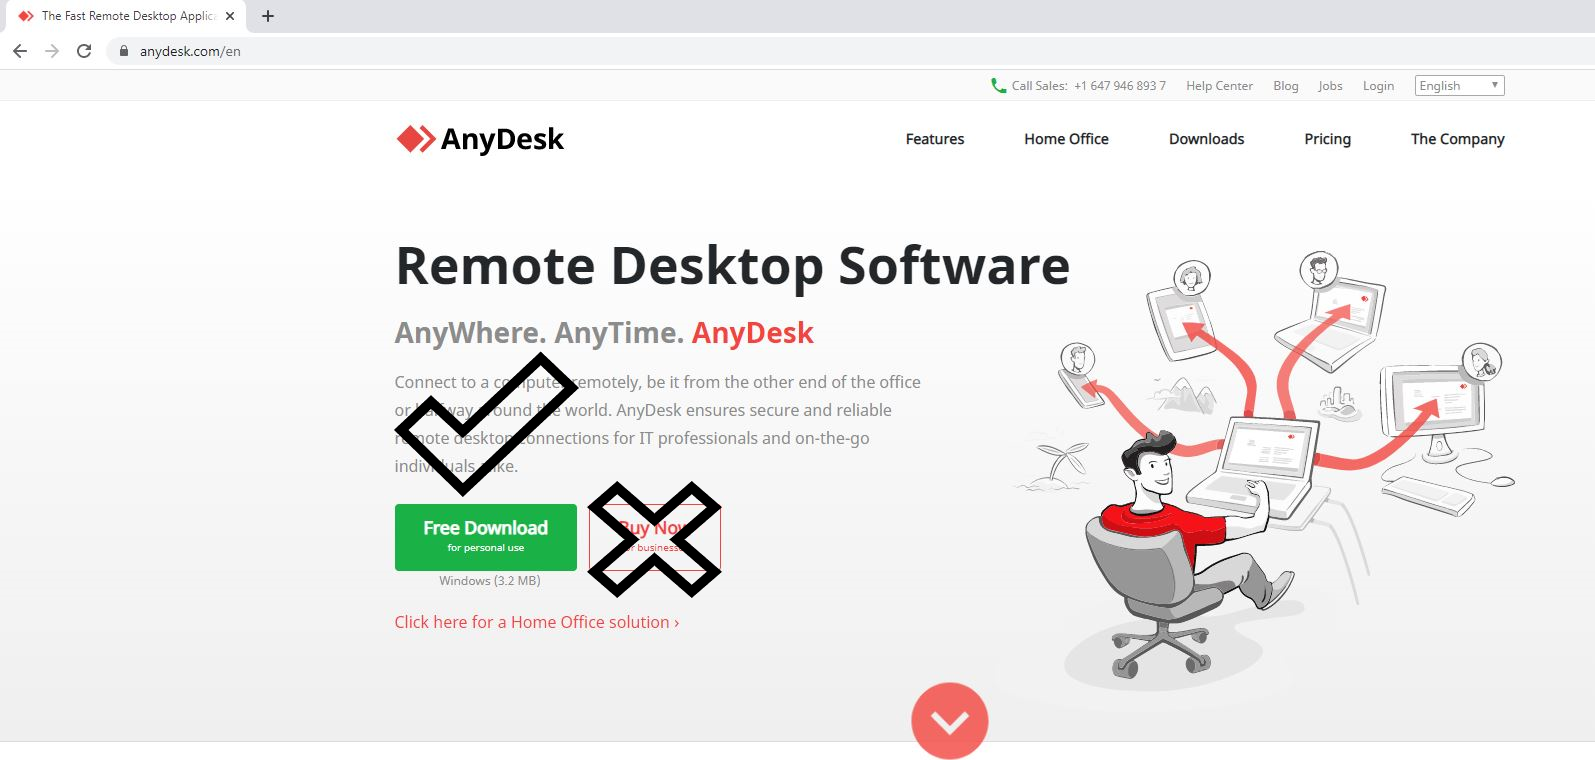 Anydesk website